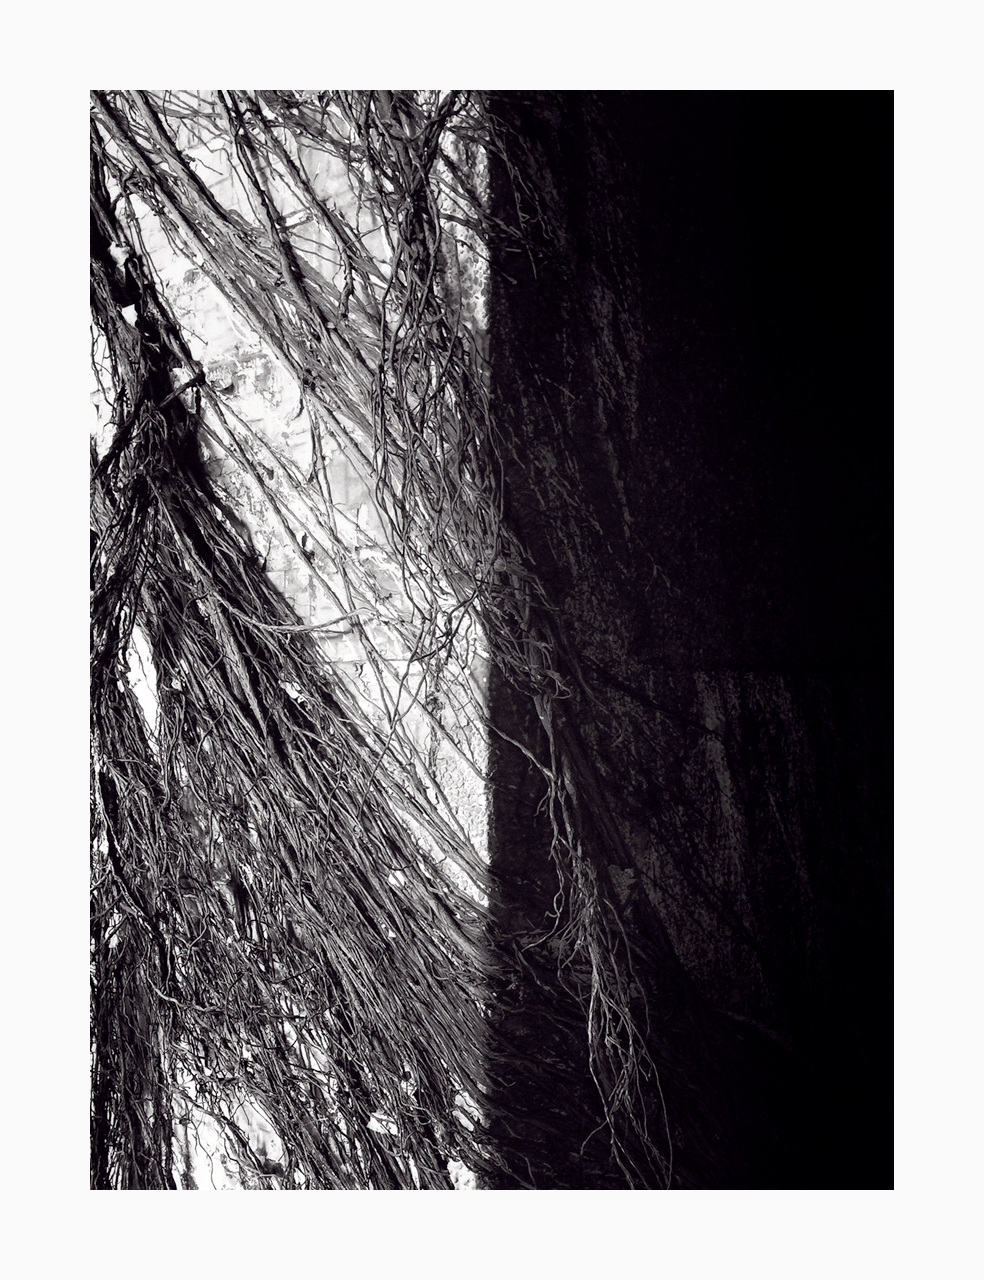 Fine art black and white image of roots covering a pillar